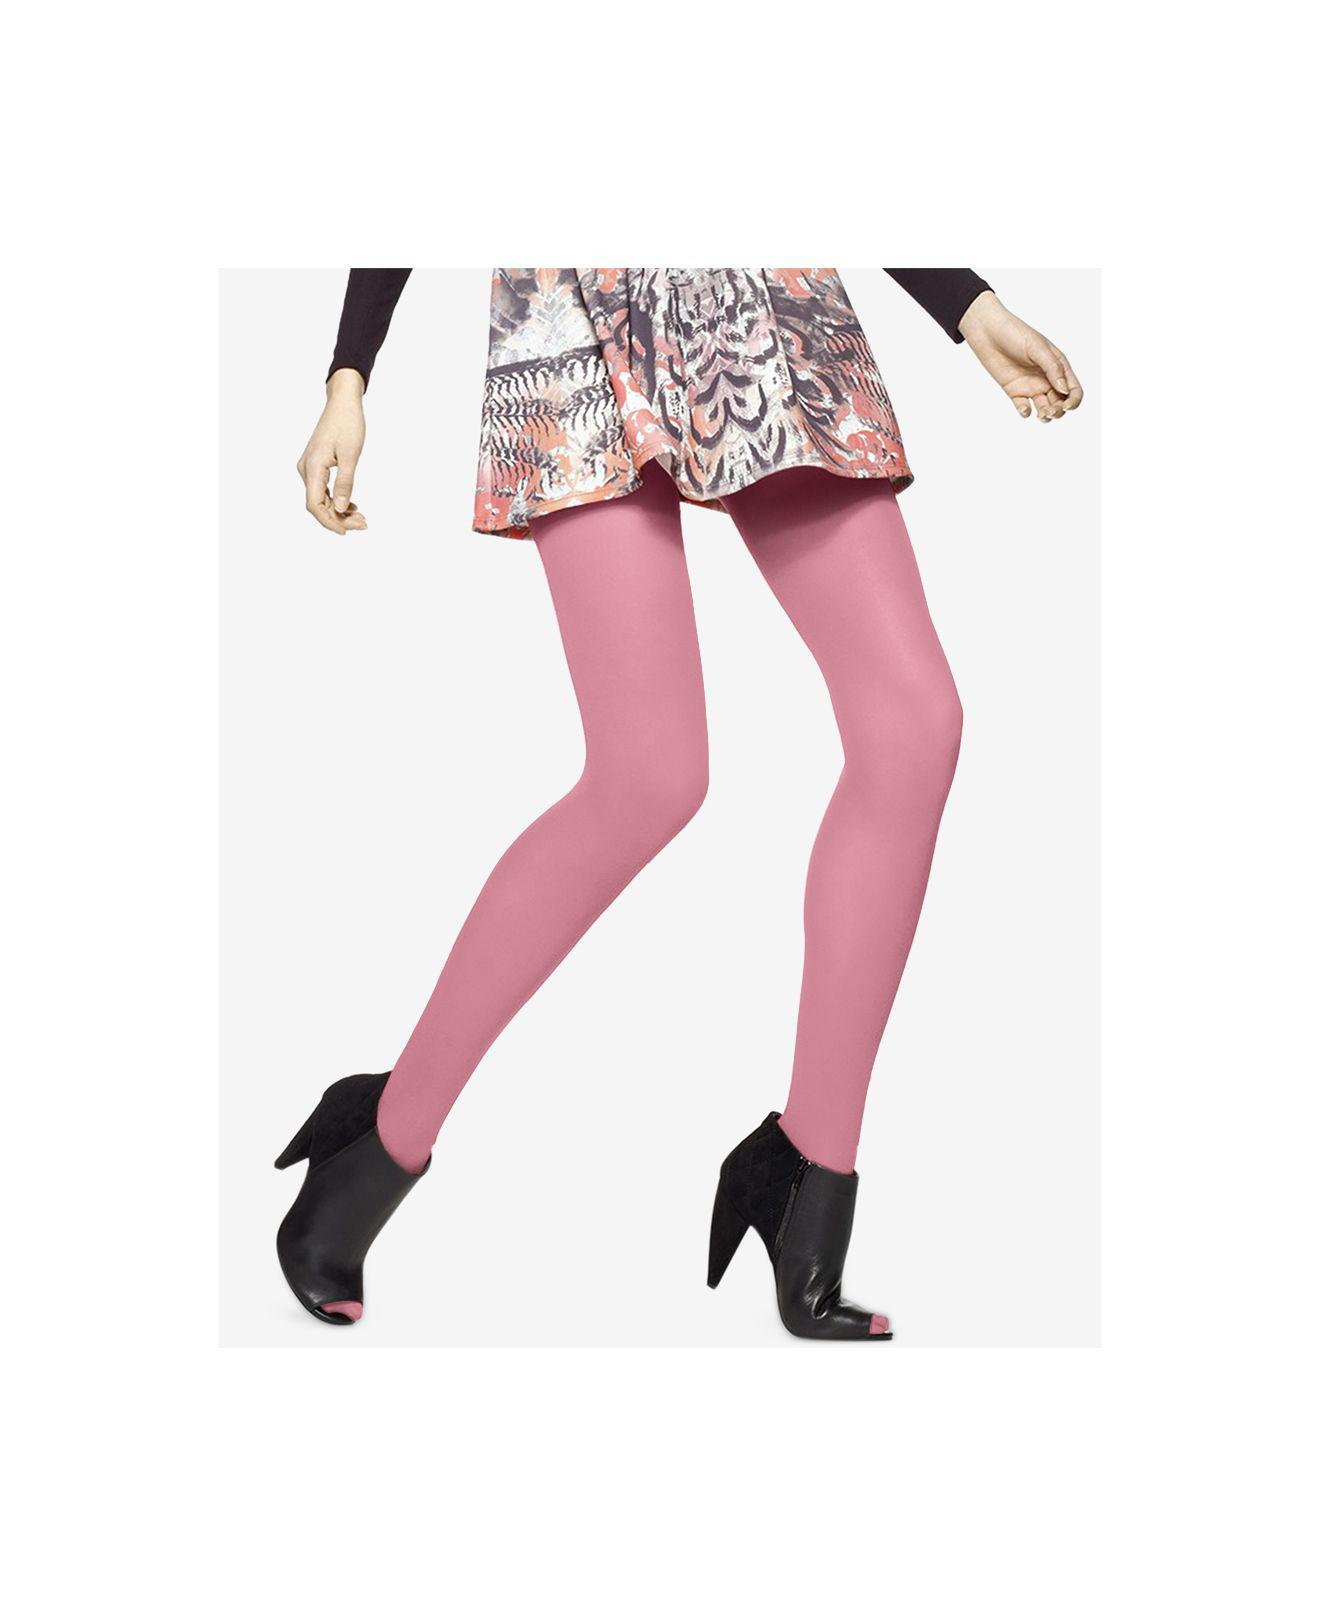 f0a60e400 Hue Opaque Tights in Pink - Lyst